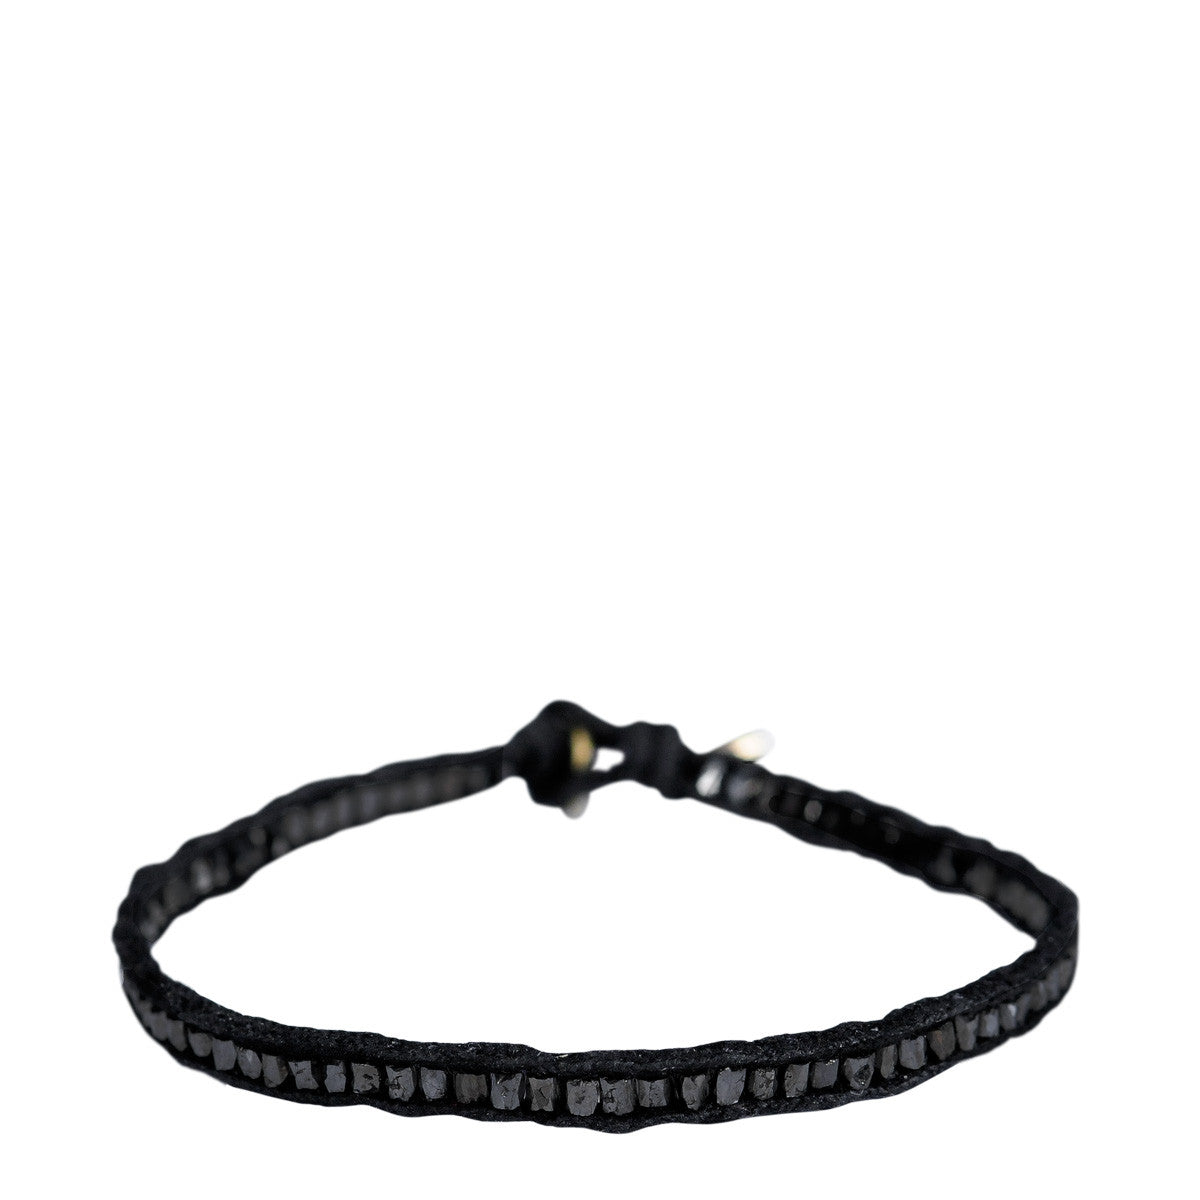 18K Gold Black Diamond Tube Bead Bracelet